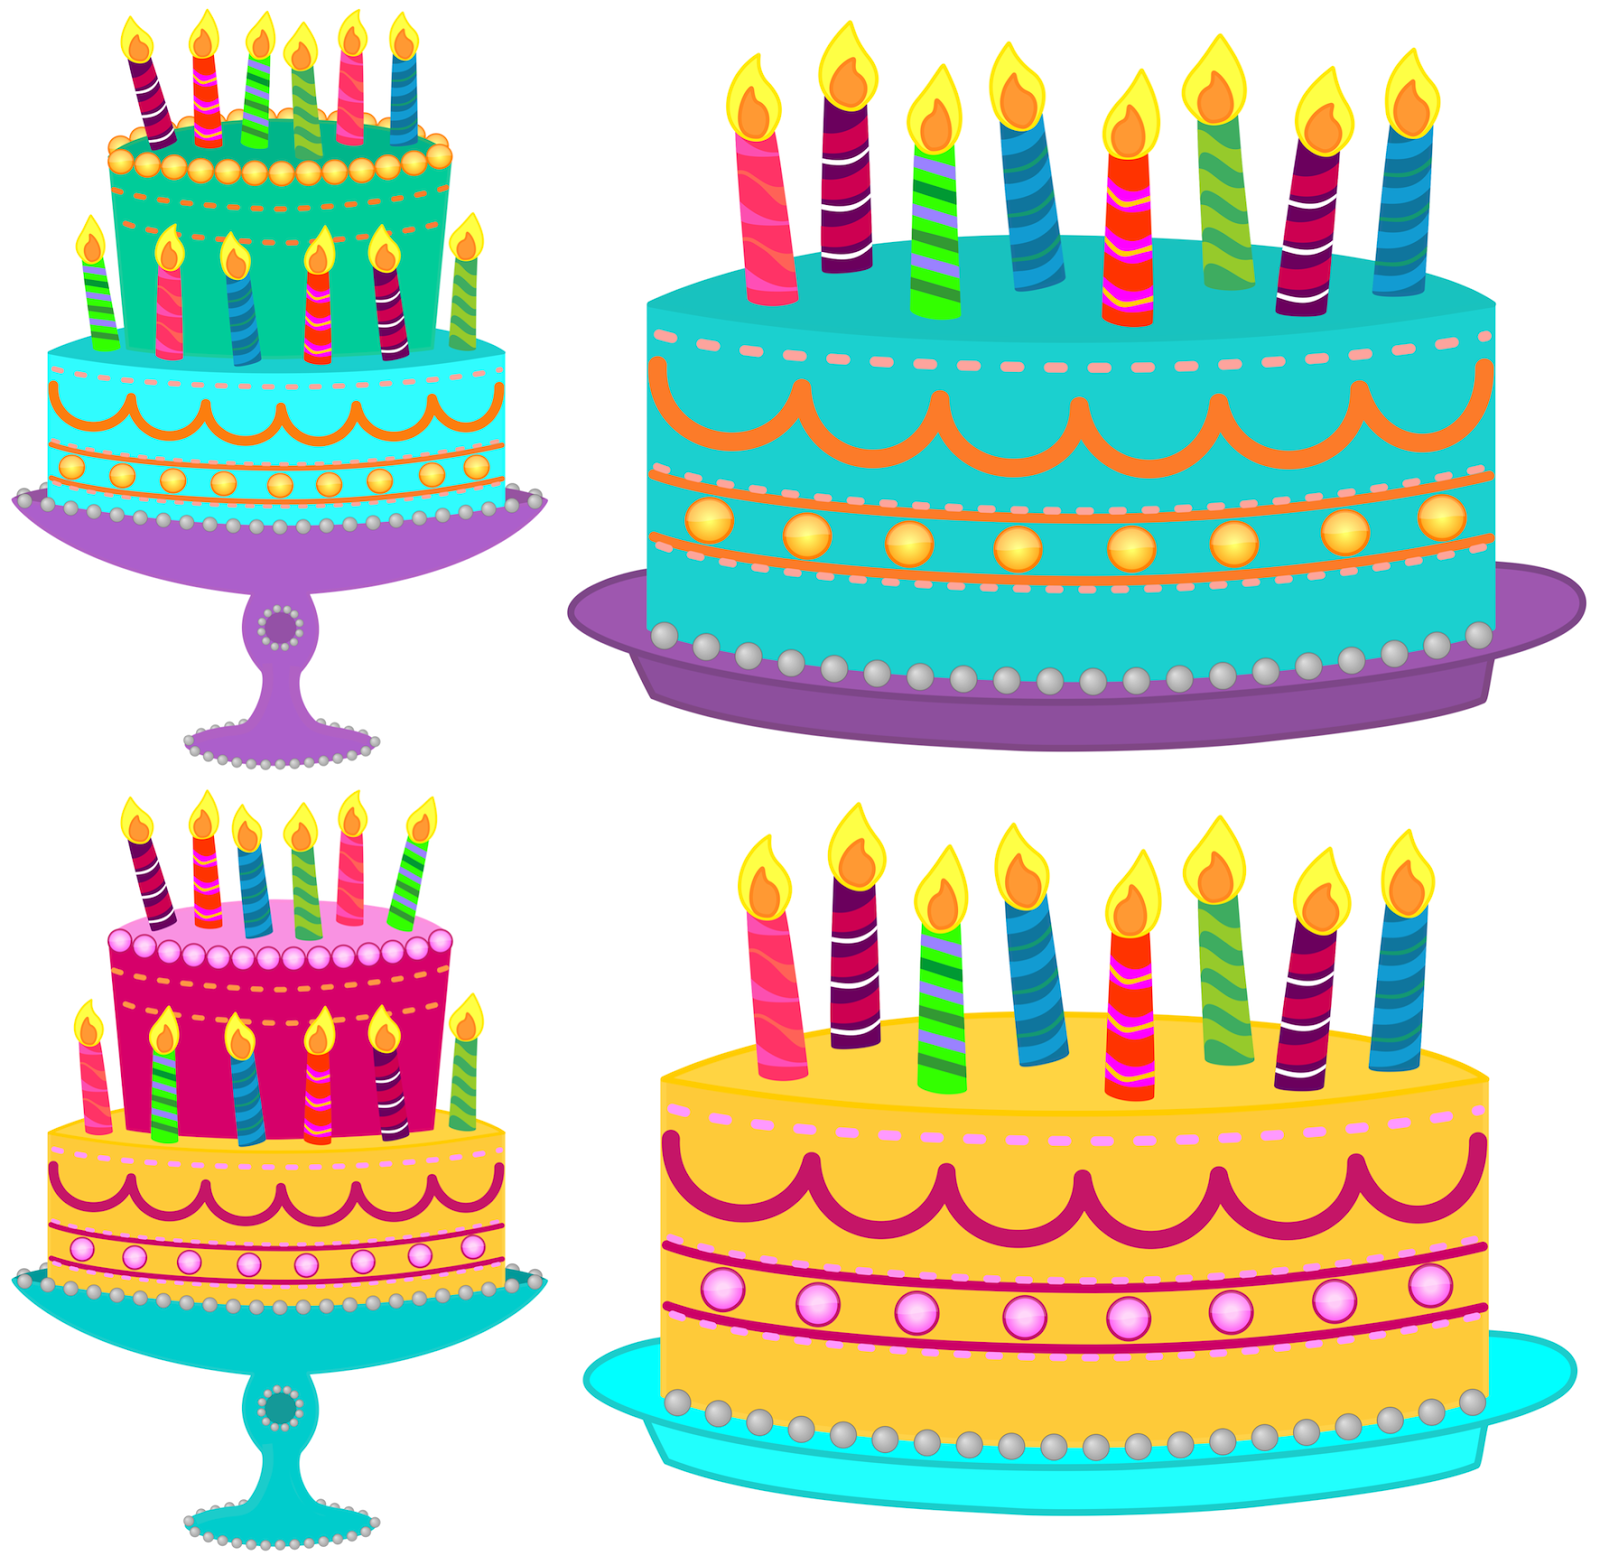 Birthday cake clipart. July blue with no